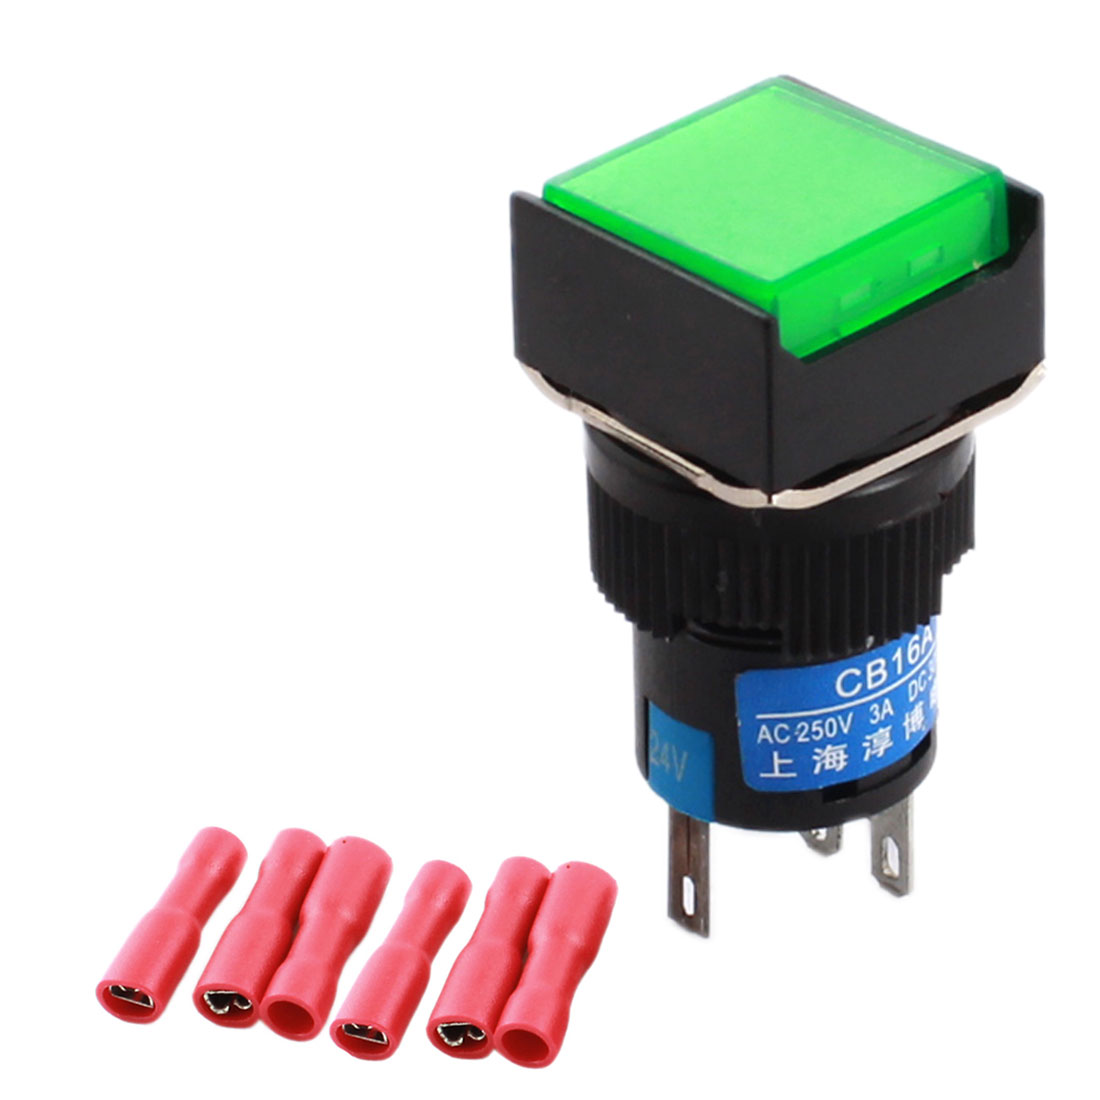 DC 24V Green Pilot Light 5-Pin 16mm Thread Panel Mount SPDT Momentary Square Push Button Switch + 5pcs Female Terminals